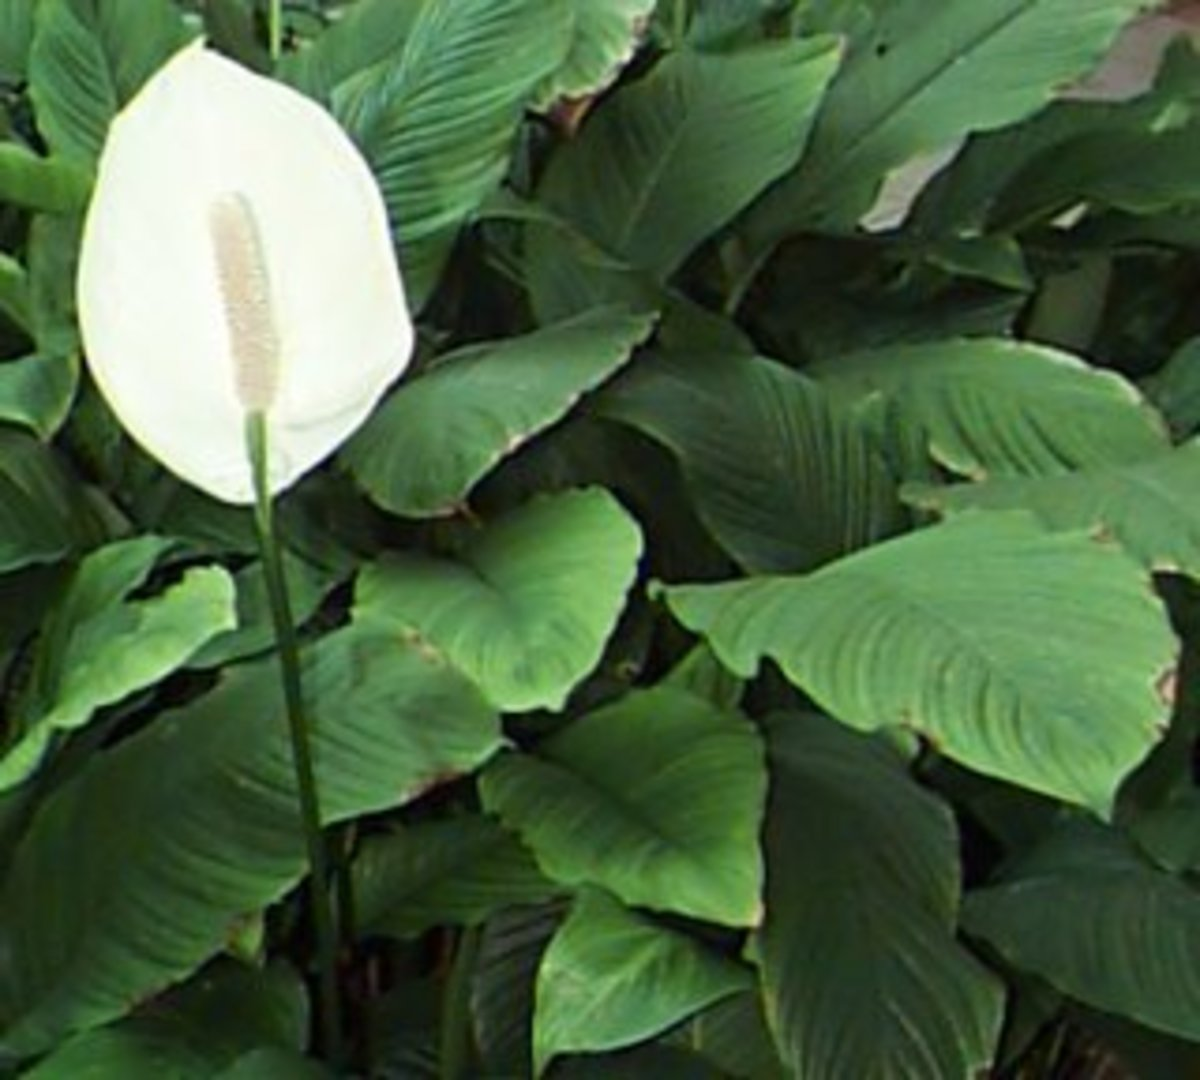 Philodendron - lucky plant